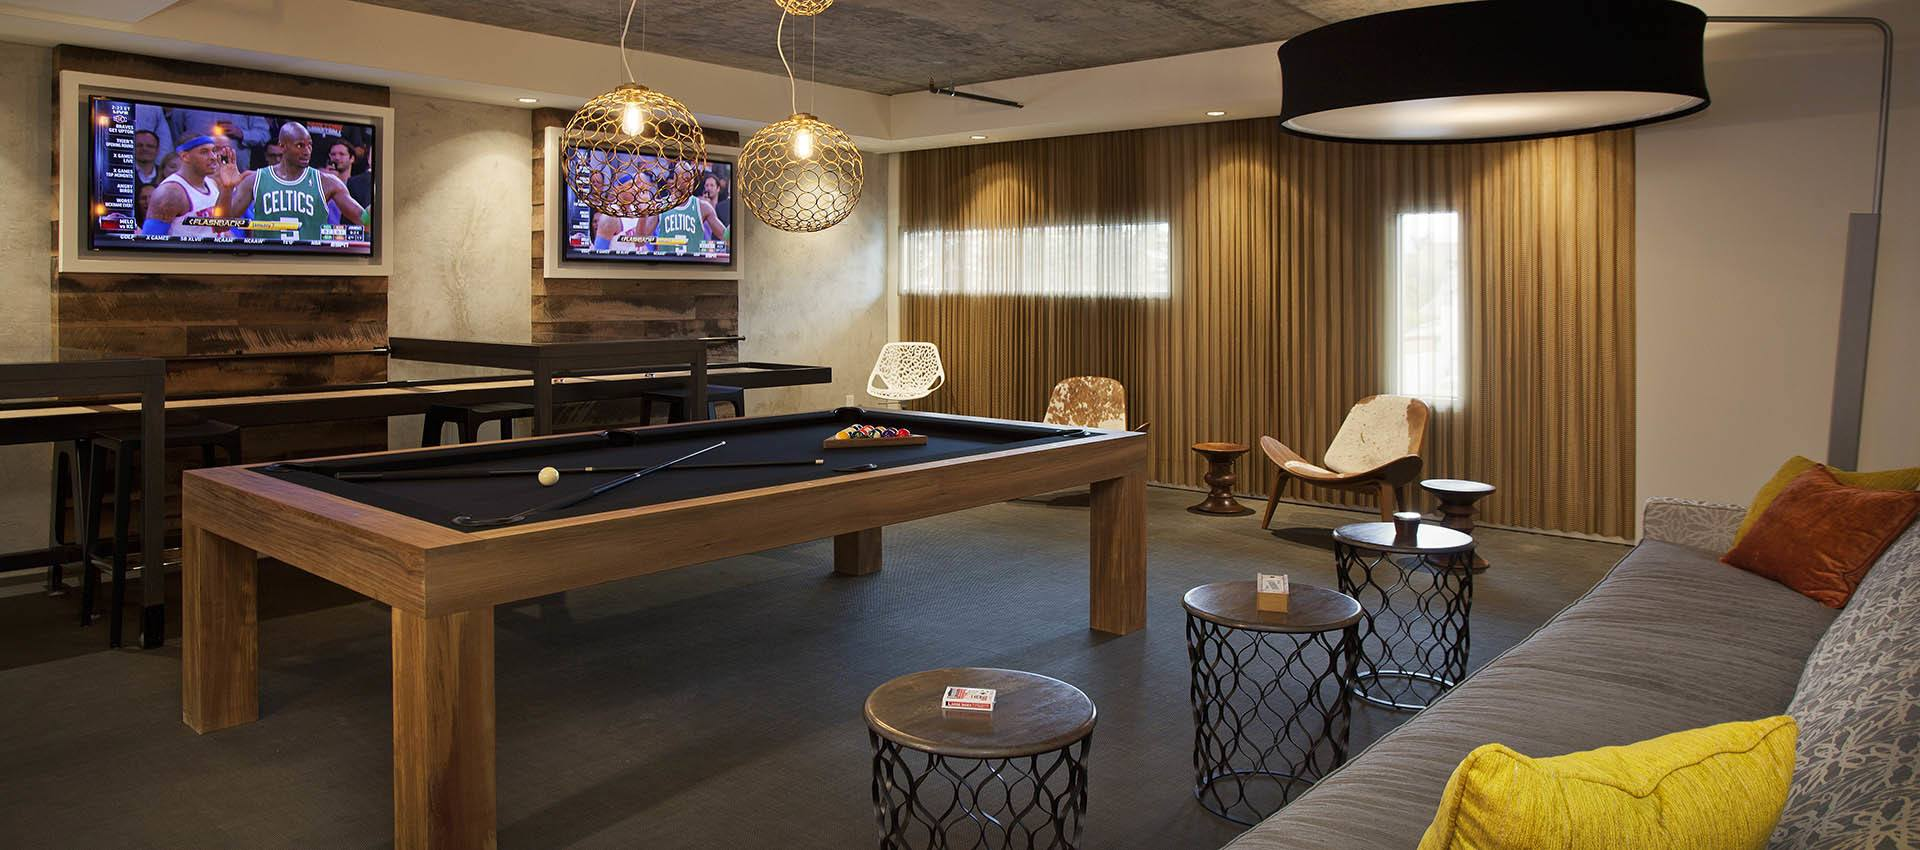 Winners circle game room at apartments in Glendale